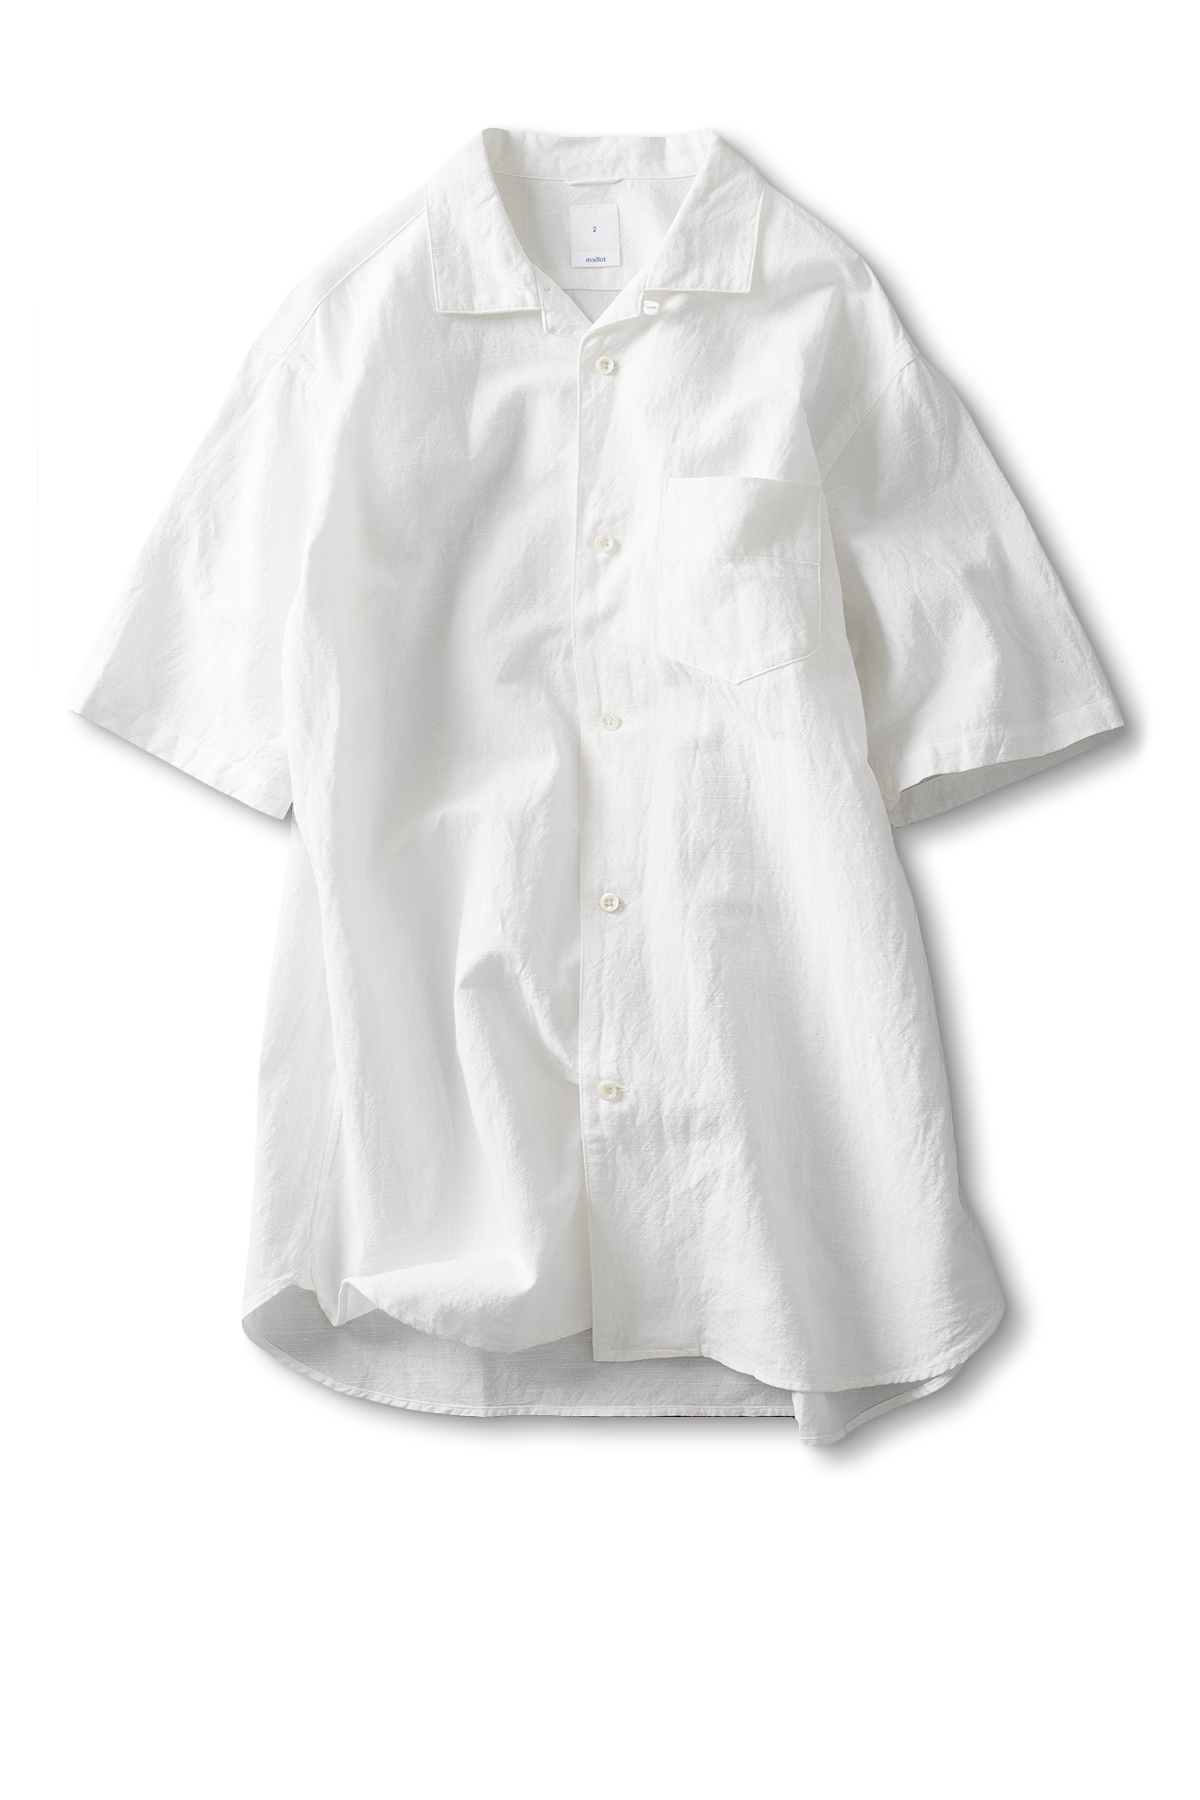 maillot : Sunset S/S Open Shirt (White)